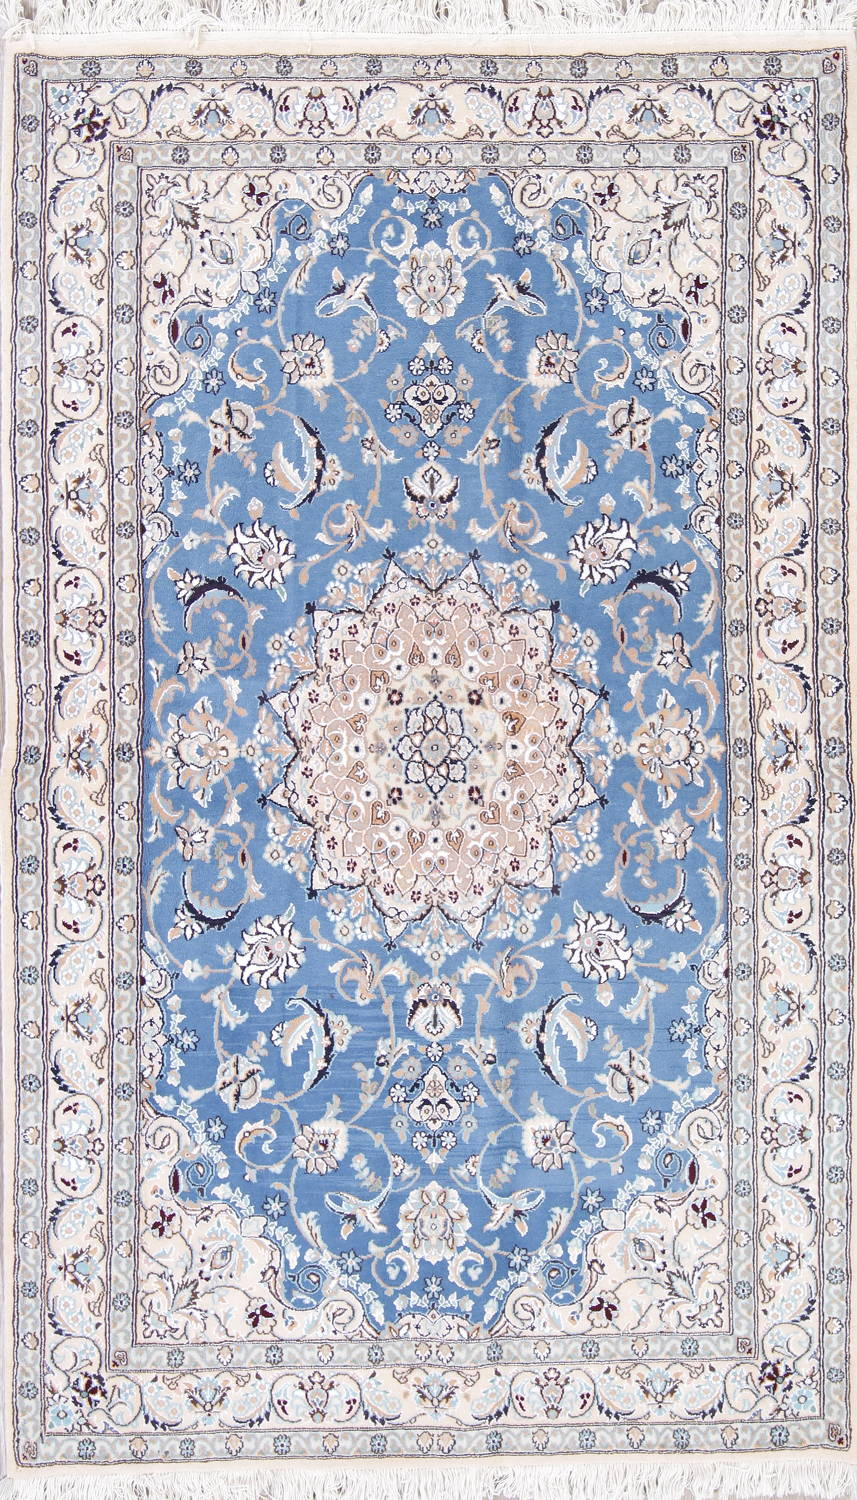 Floral Blue Nain Persian Hand-Knotted 4x7 Wool Silk Area Rug image 1